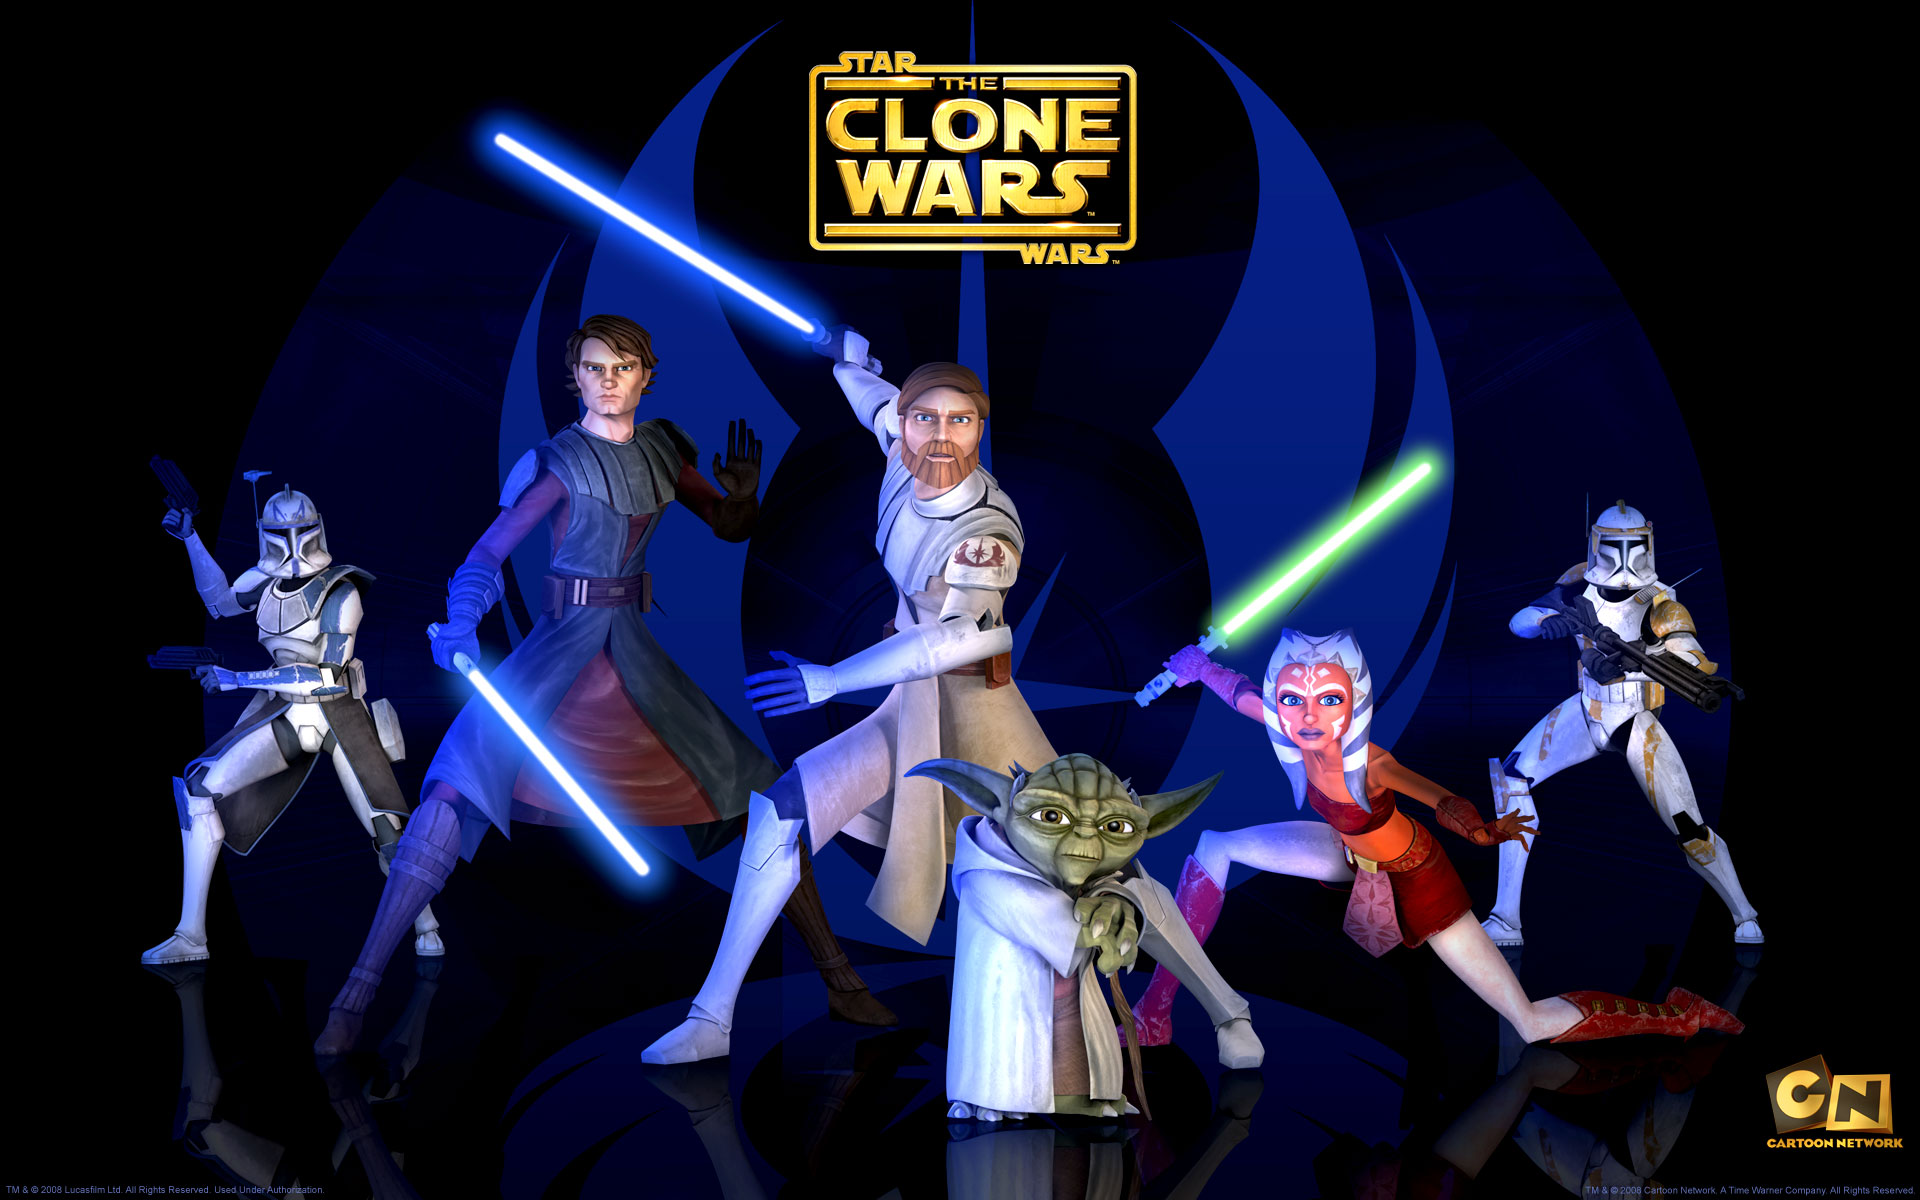 starwarstheclonewars Star Wars Celebration 2015: A Report